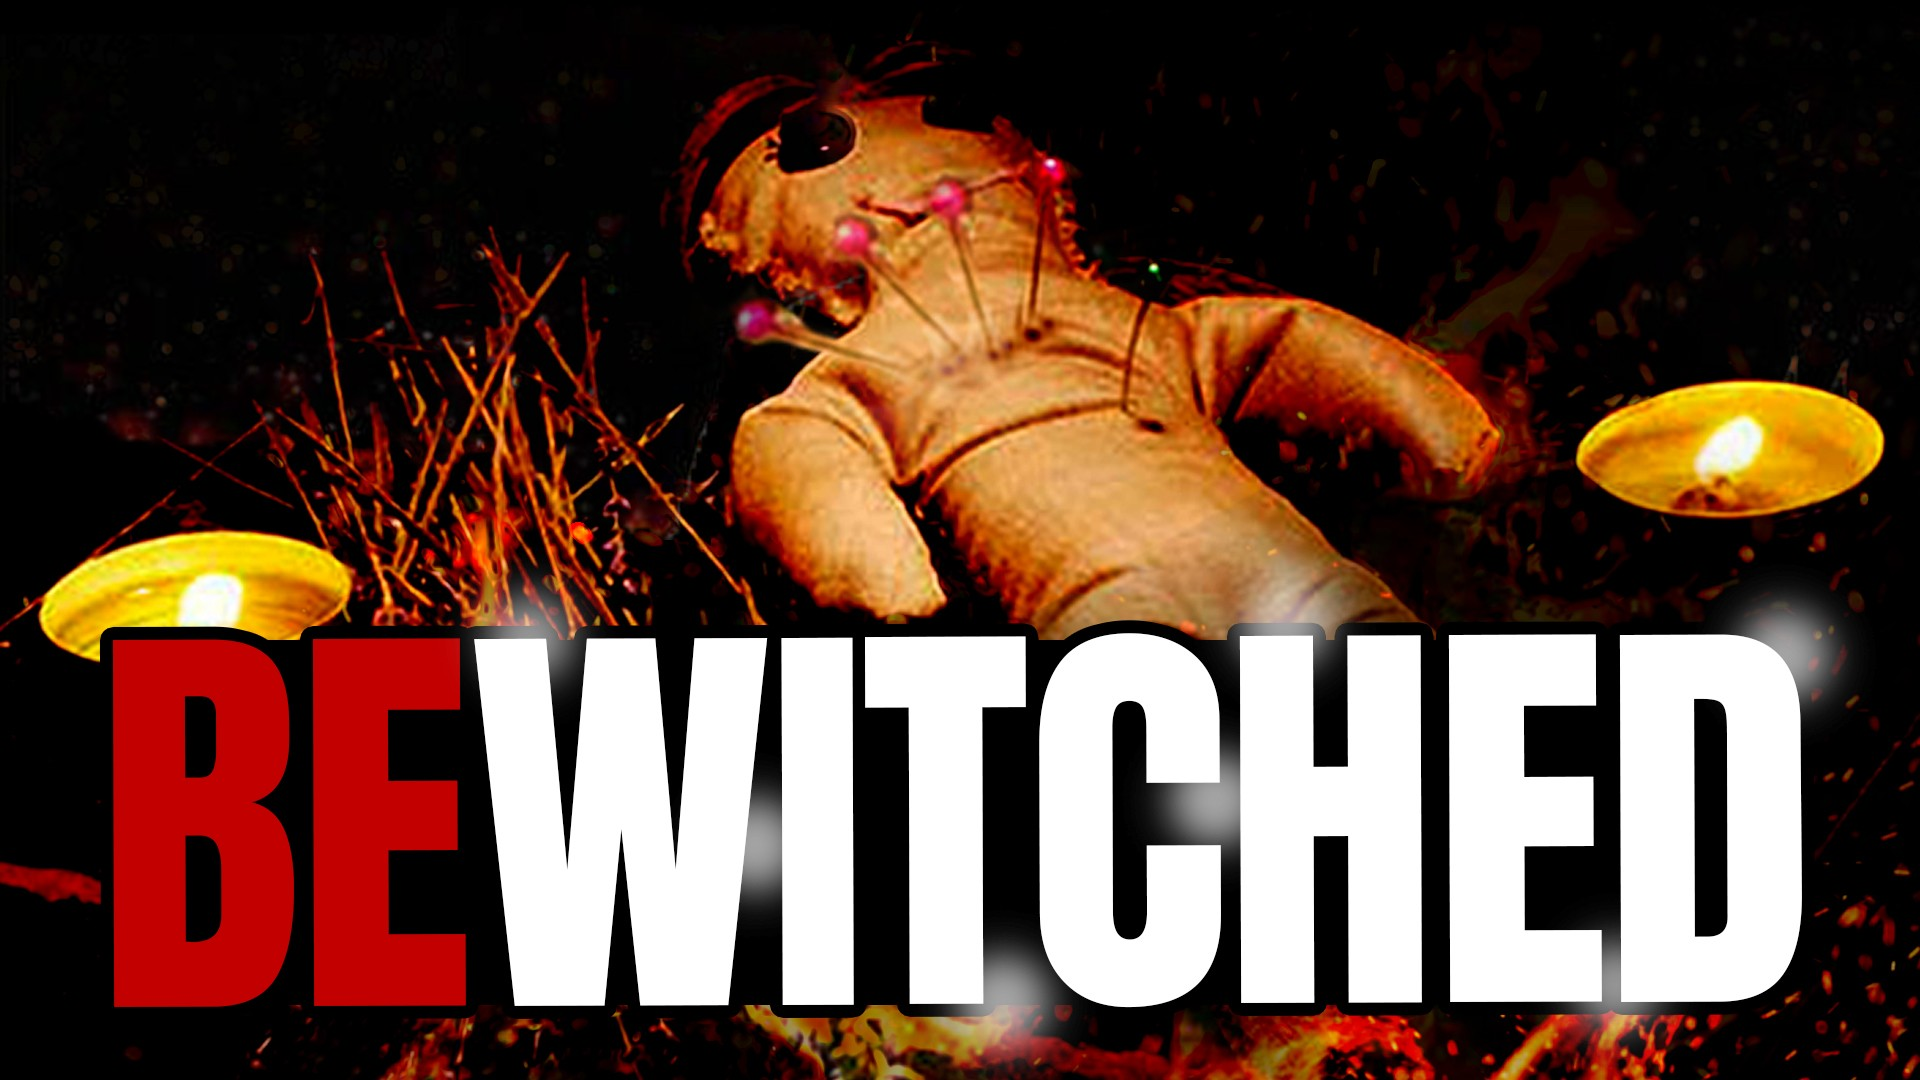 Bewitched – Exposing The Weapons Of Witchcraft